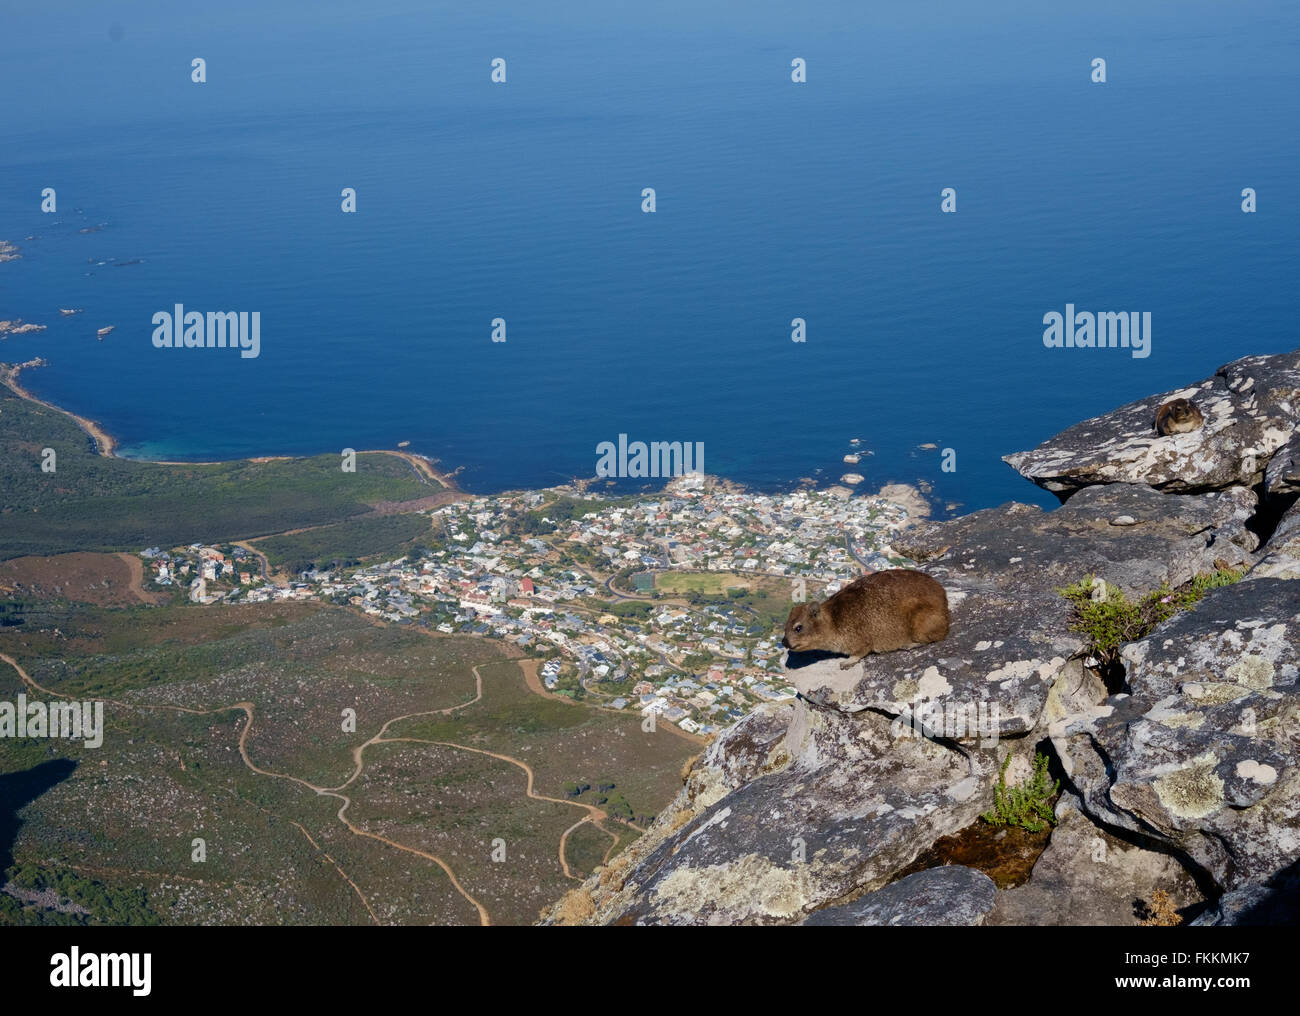 Dassie or Rock Hyrax on table mountain, Cape Town, overlooking the coast and Atlantic Ocean - Stock Image